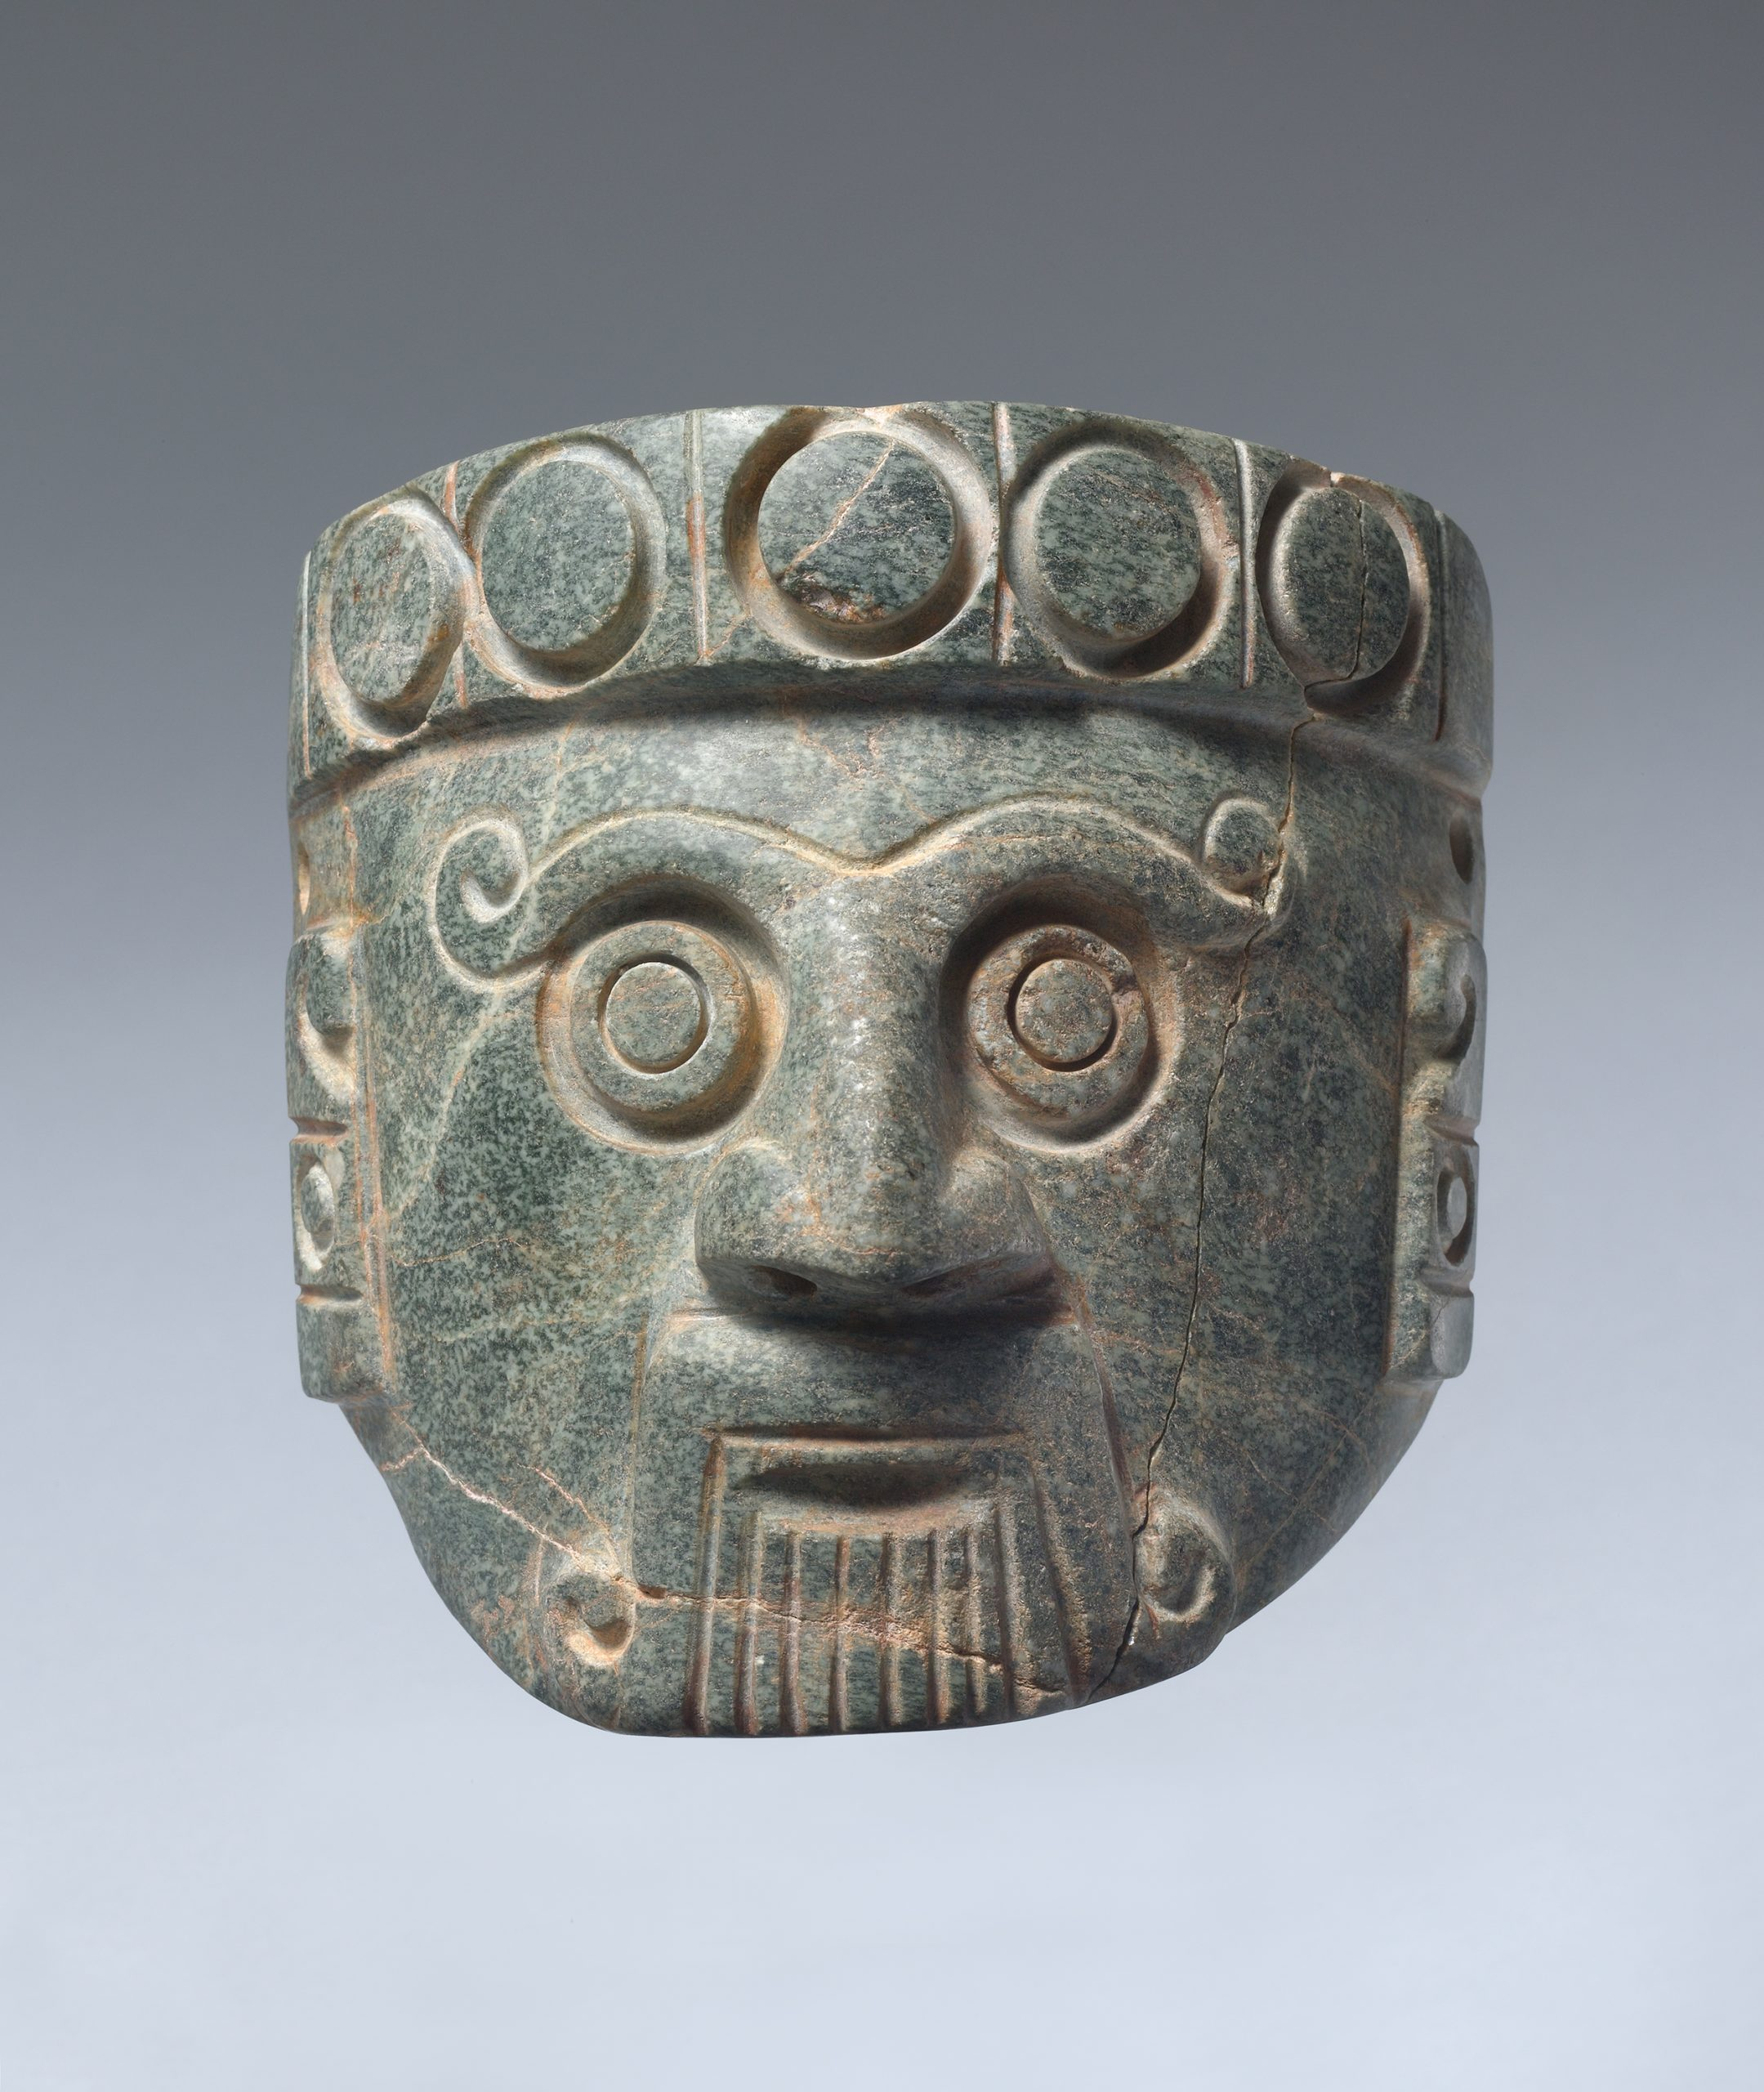 Stone head of a rain god with large bulging eyes and long fangs emerging from curled lips.